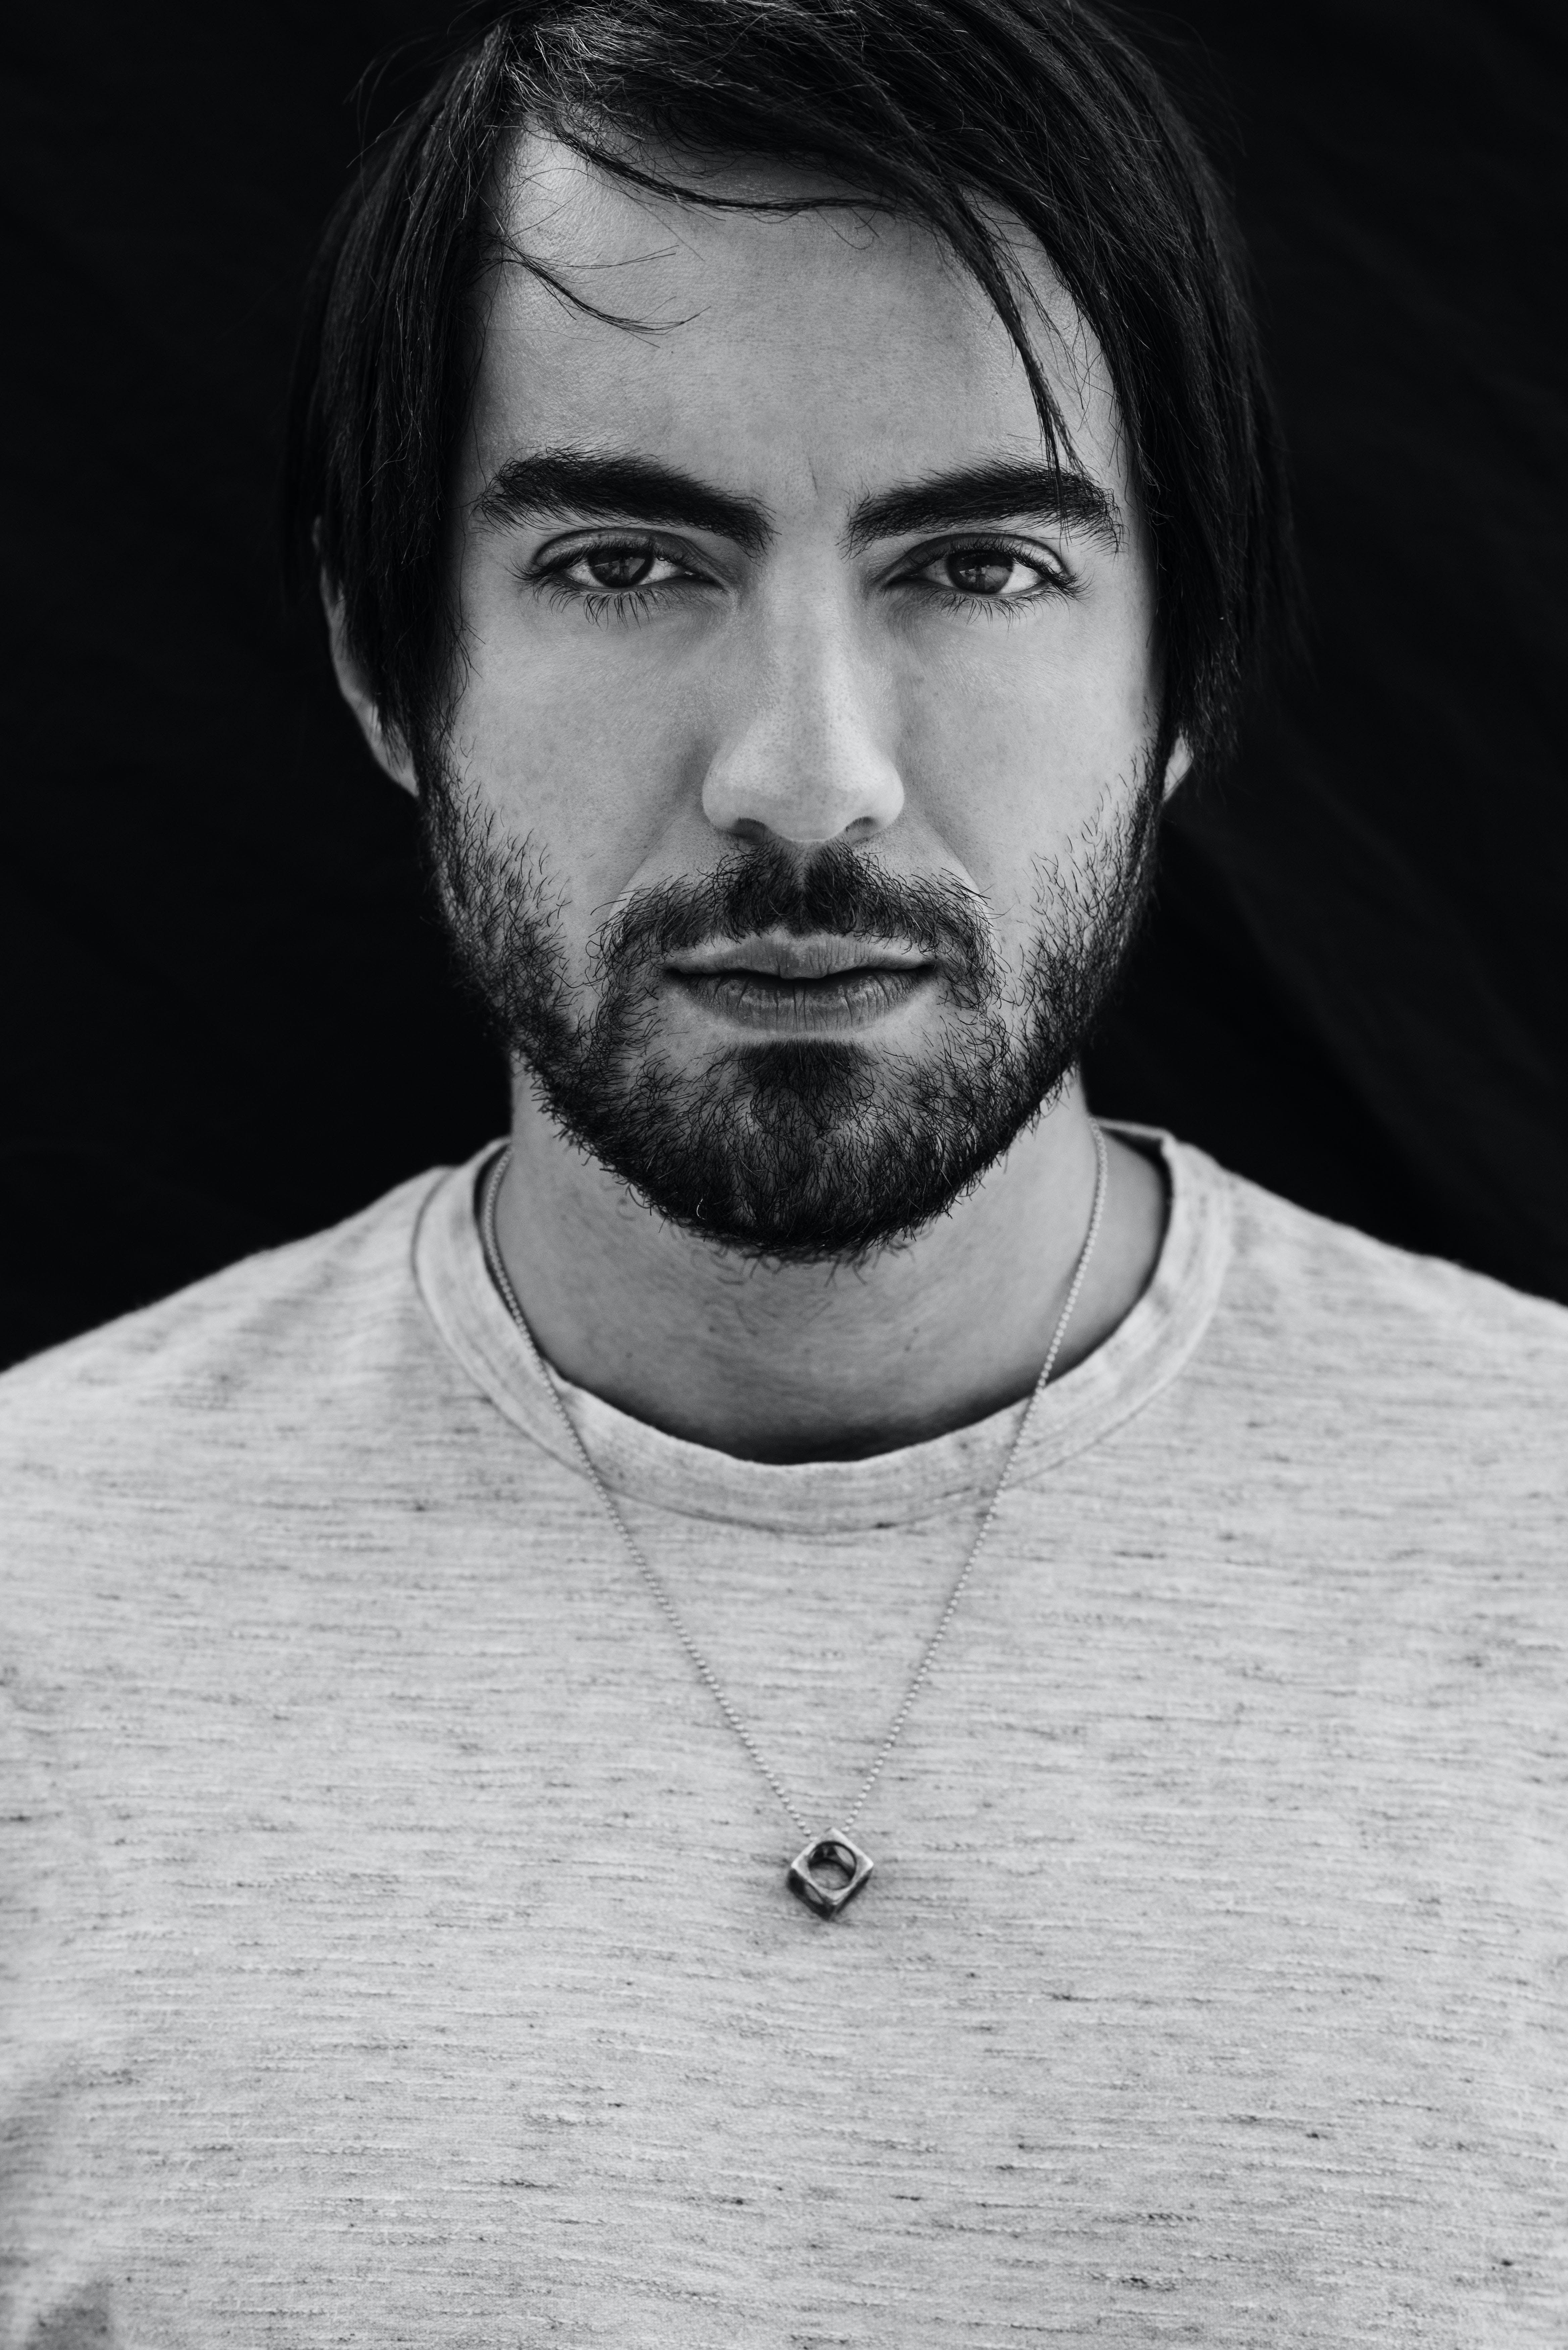 Grayscale Photo of Man Wearing Gray Crew-neck Shirt